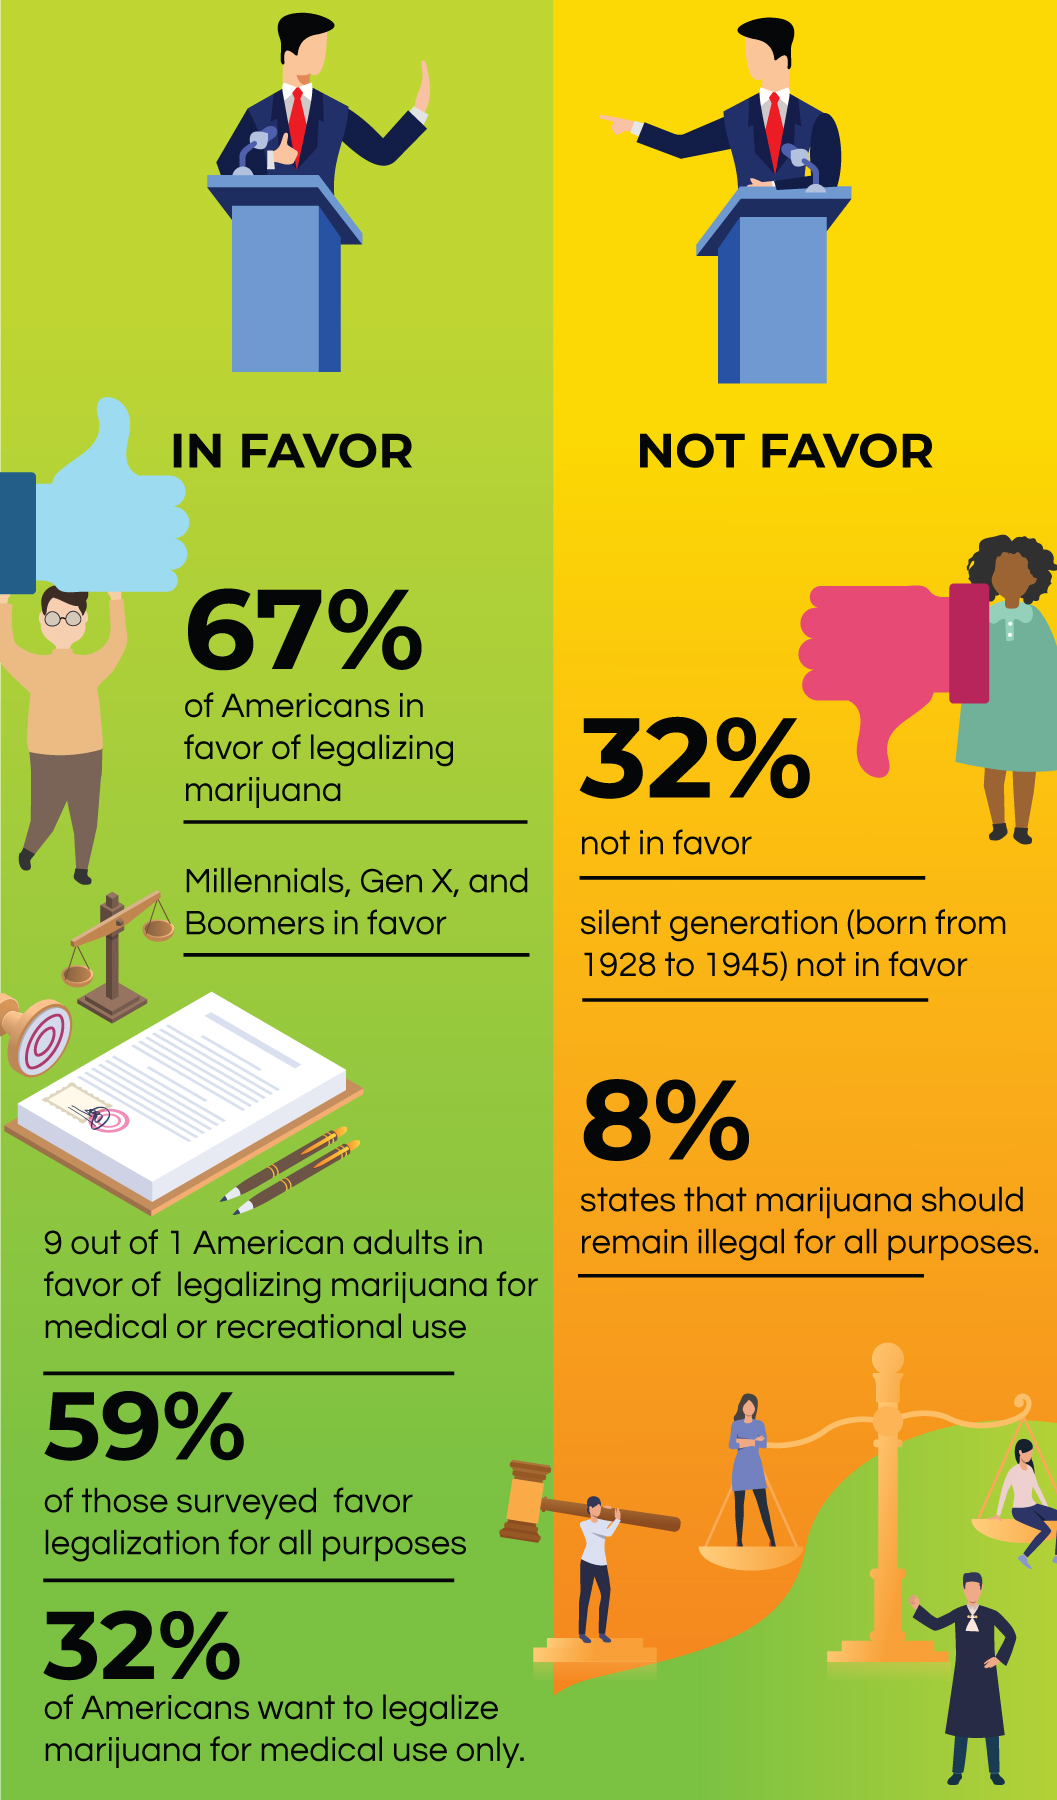 Public Opinion of Marijuana Legalization